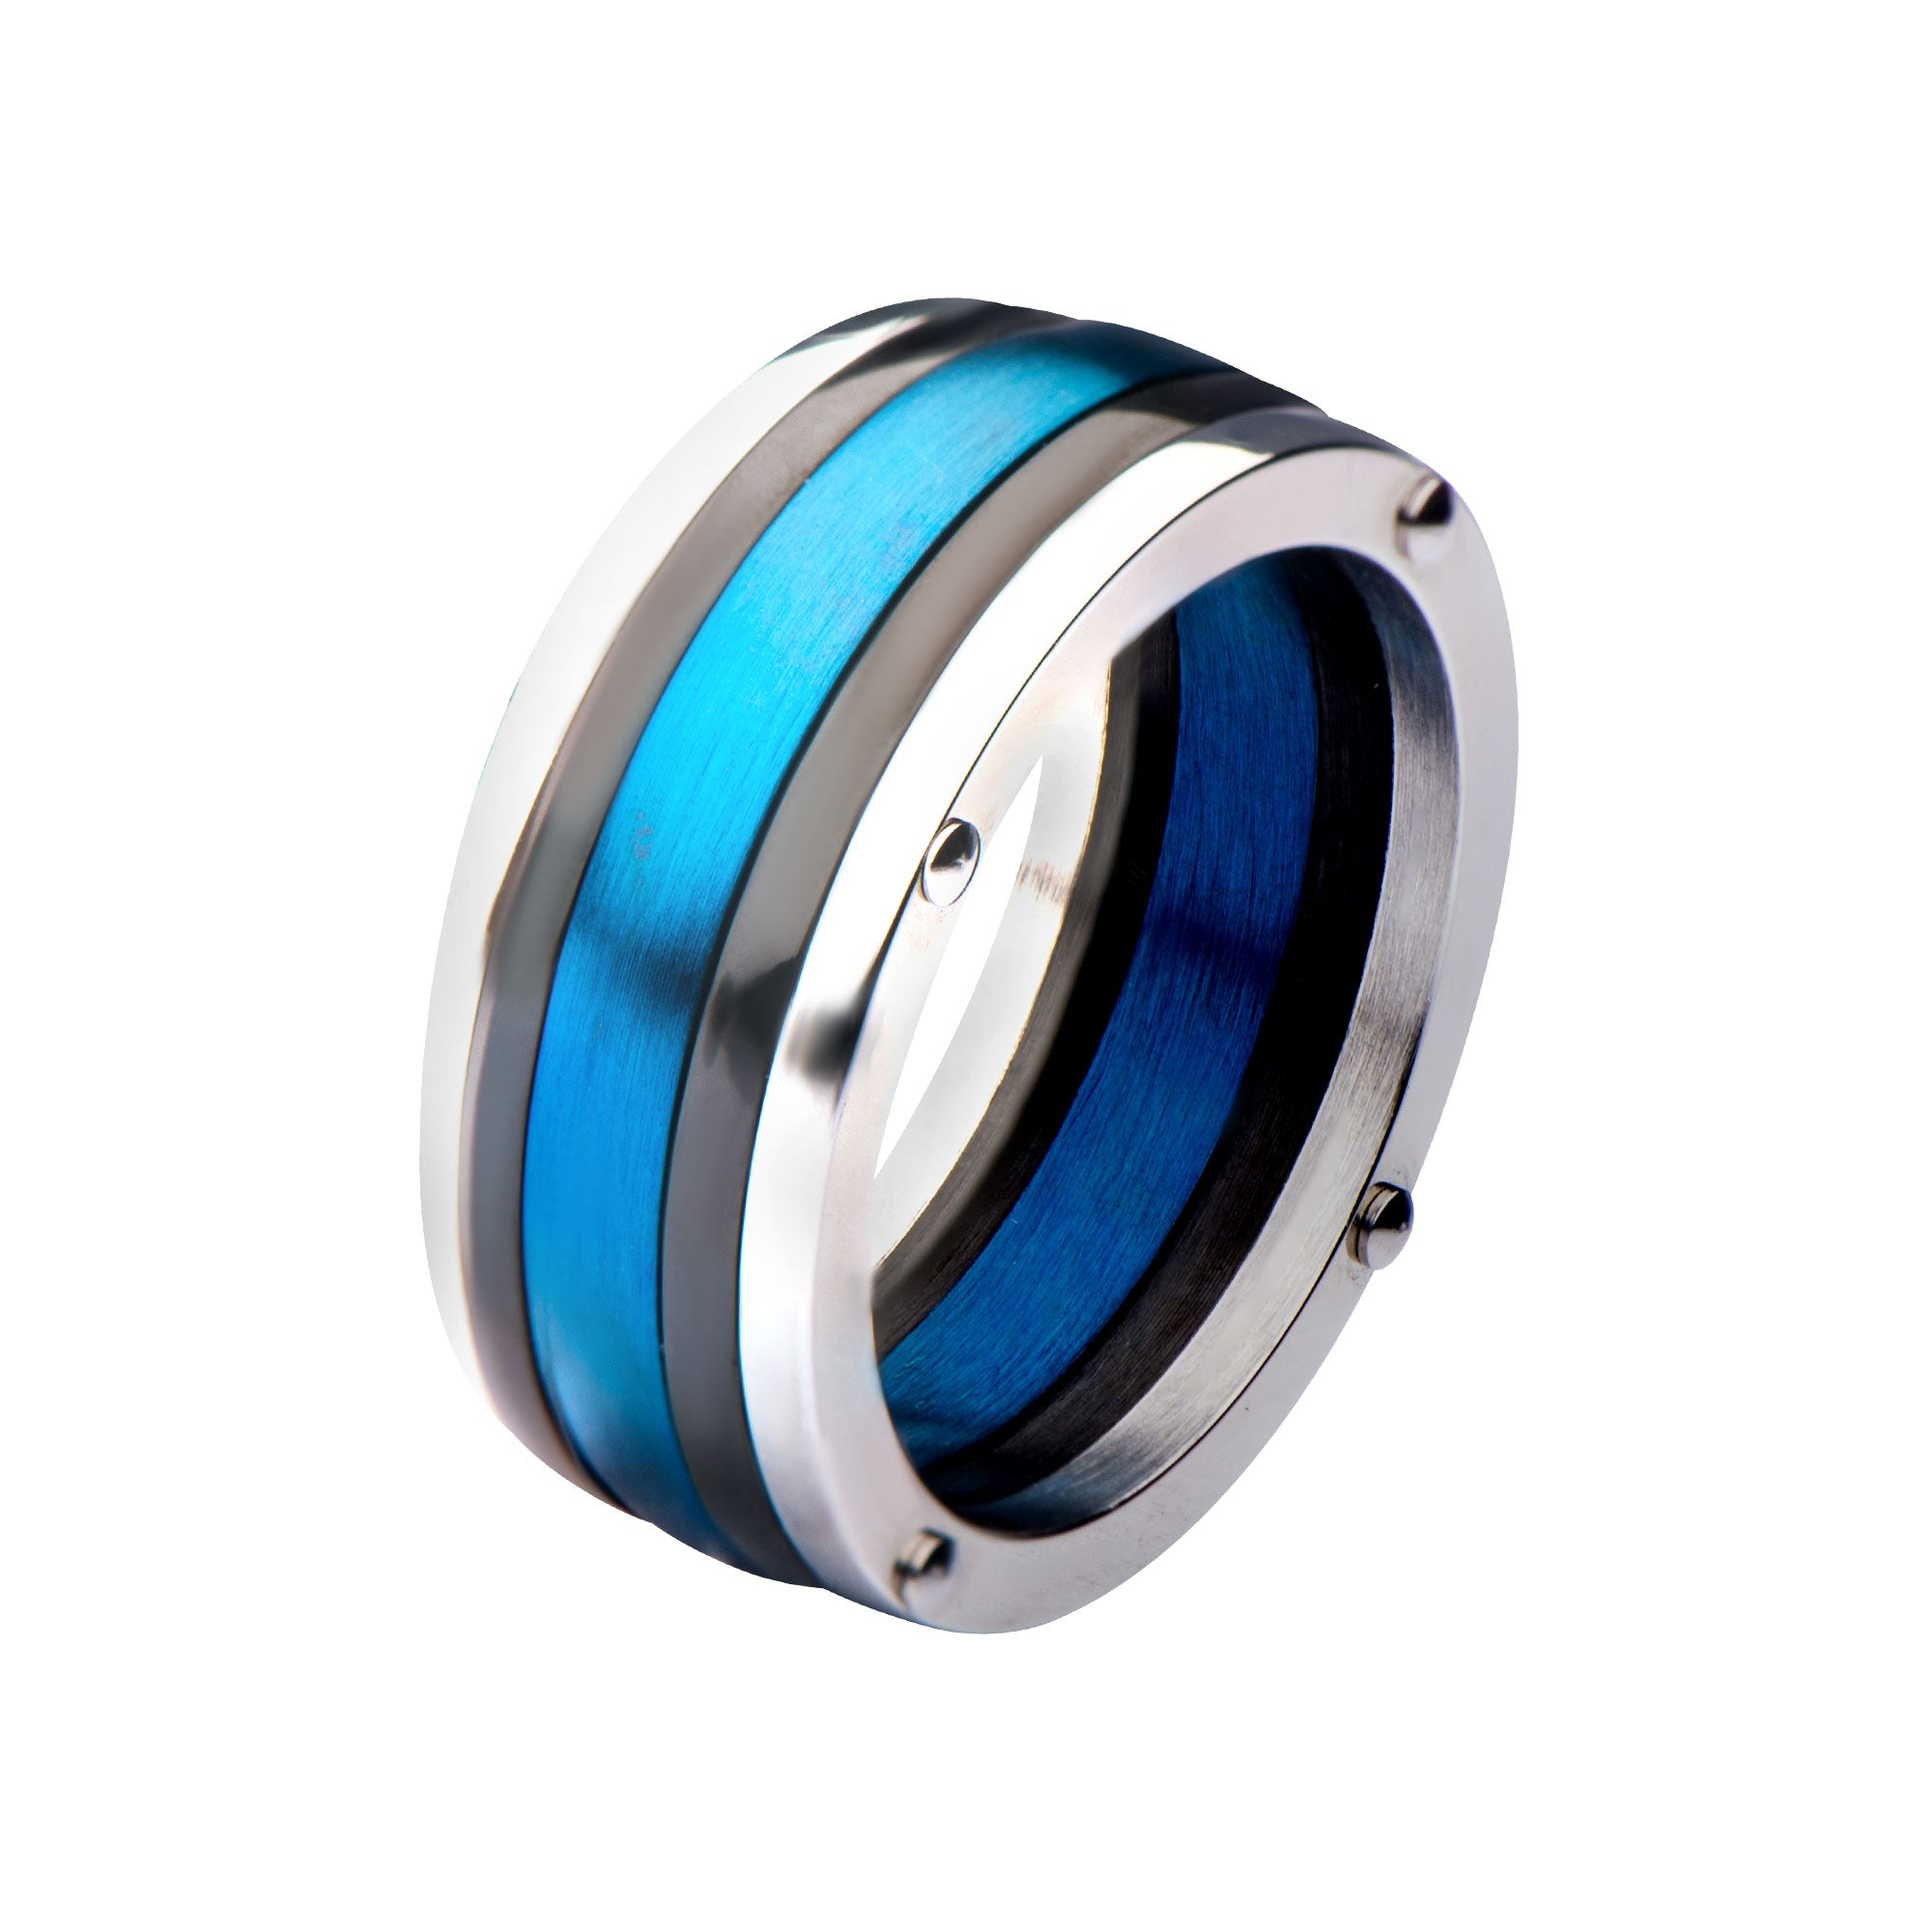 Steel, Black Plated & Blue Plated Polished Ring